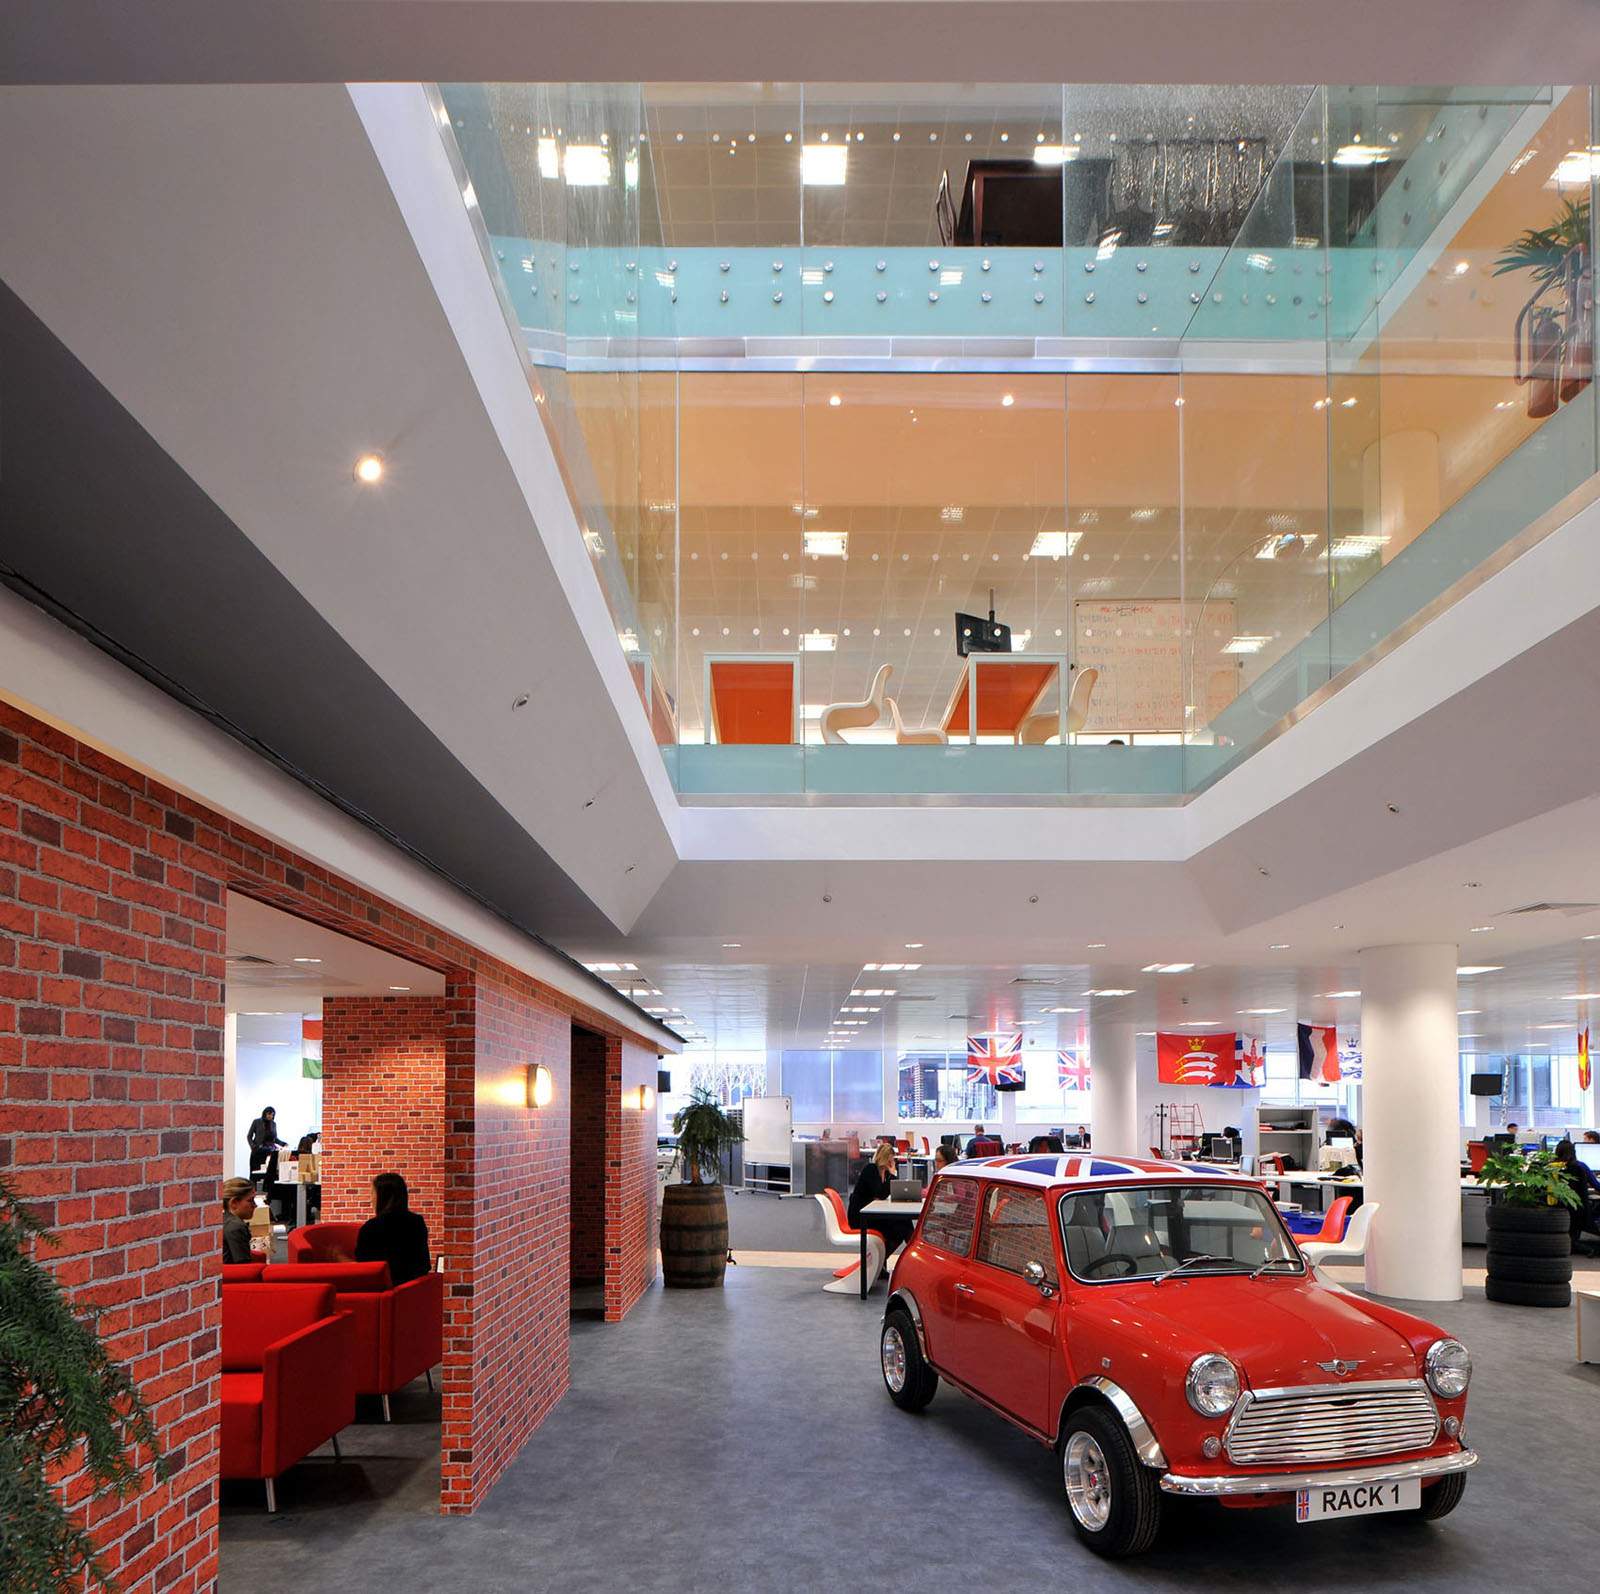 google tel aviv offices rock. british themed interior design google tel aviv offices rock